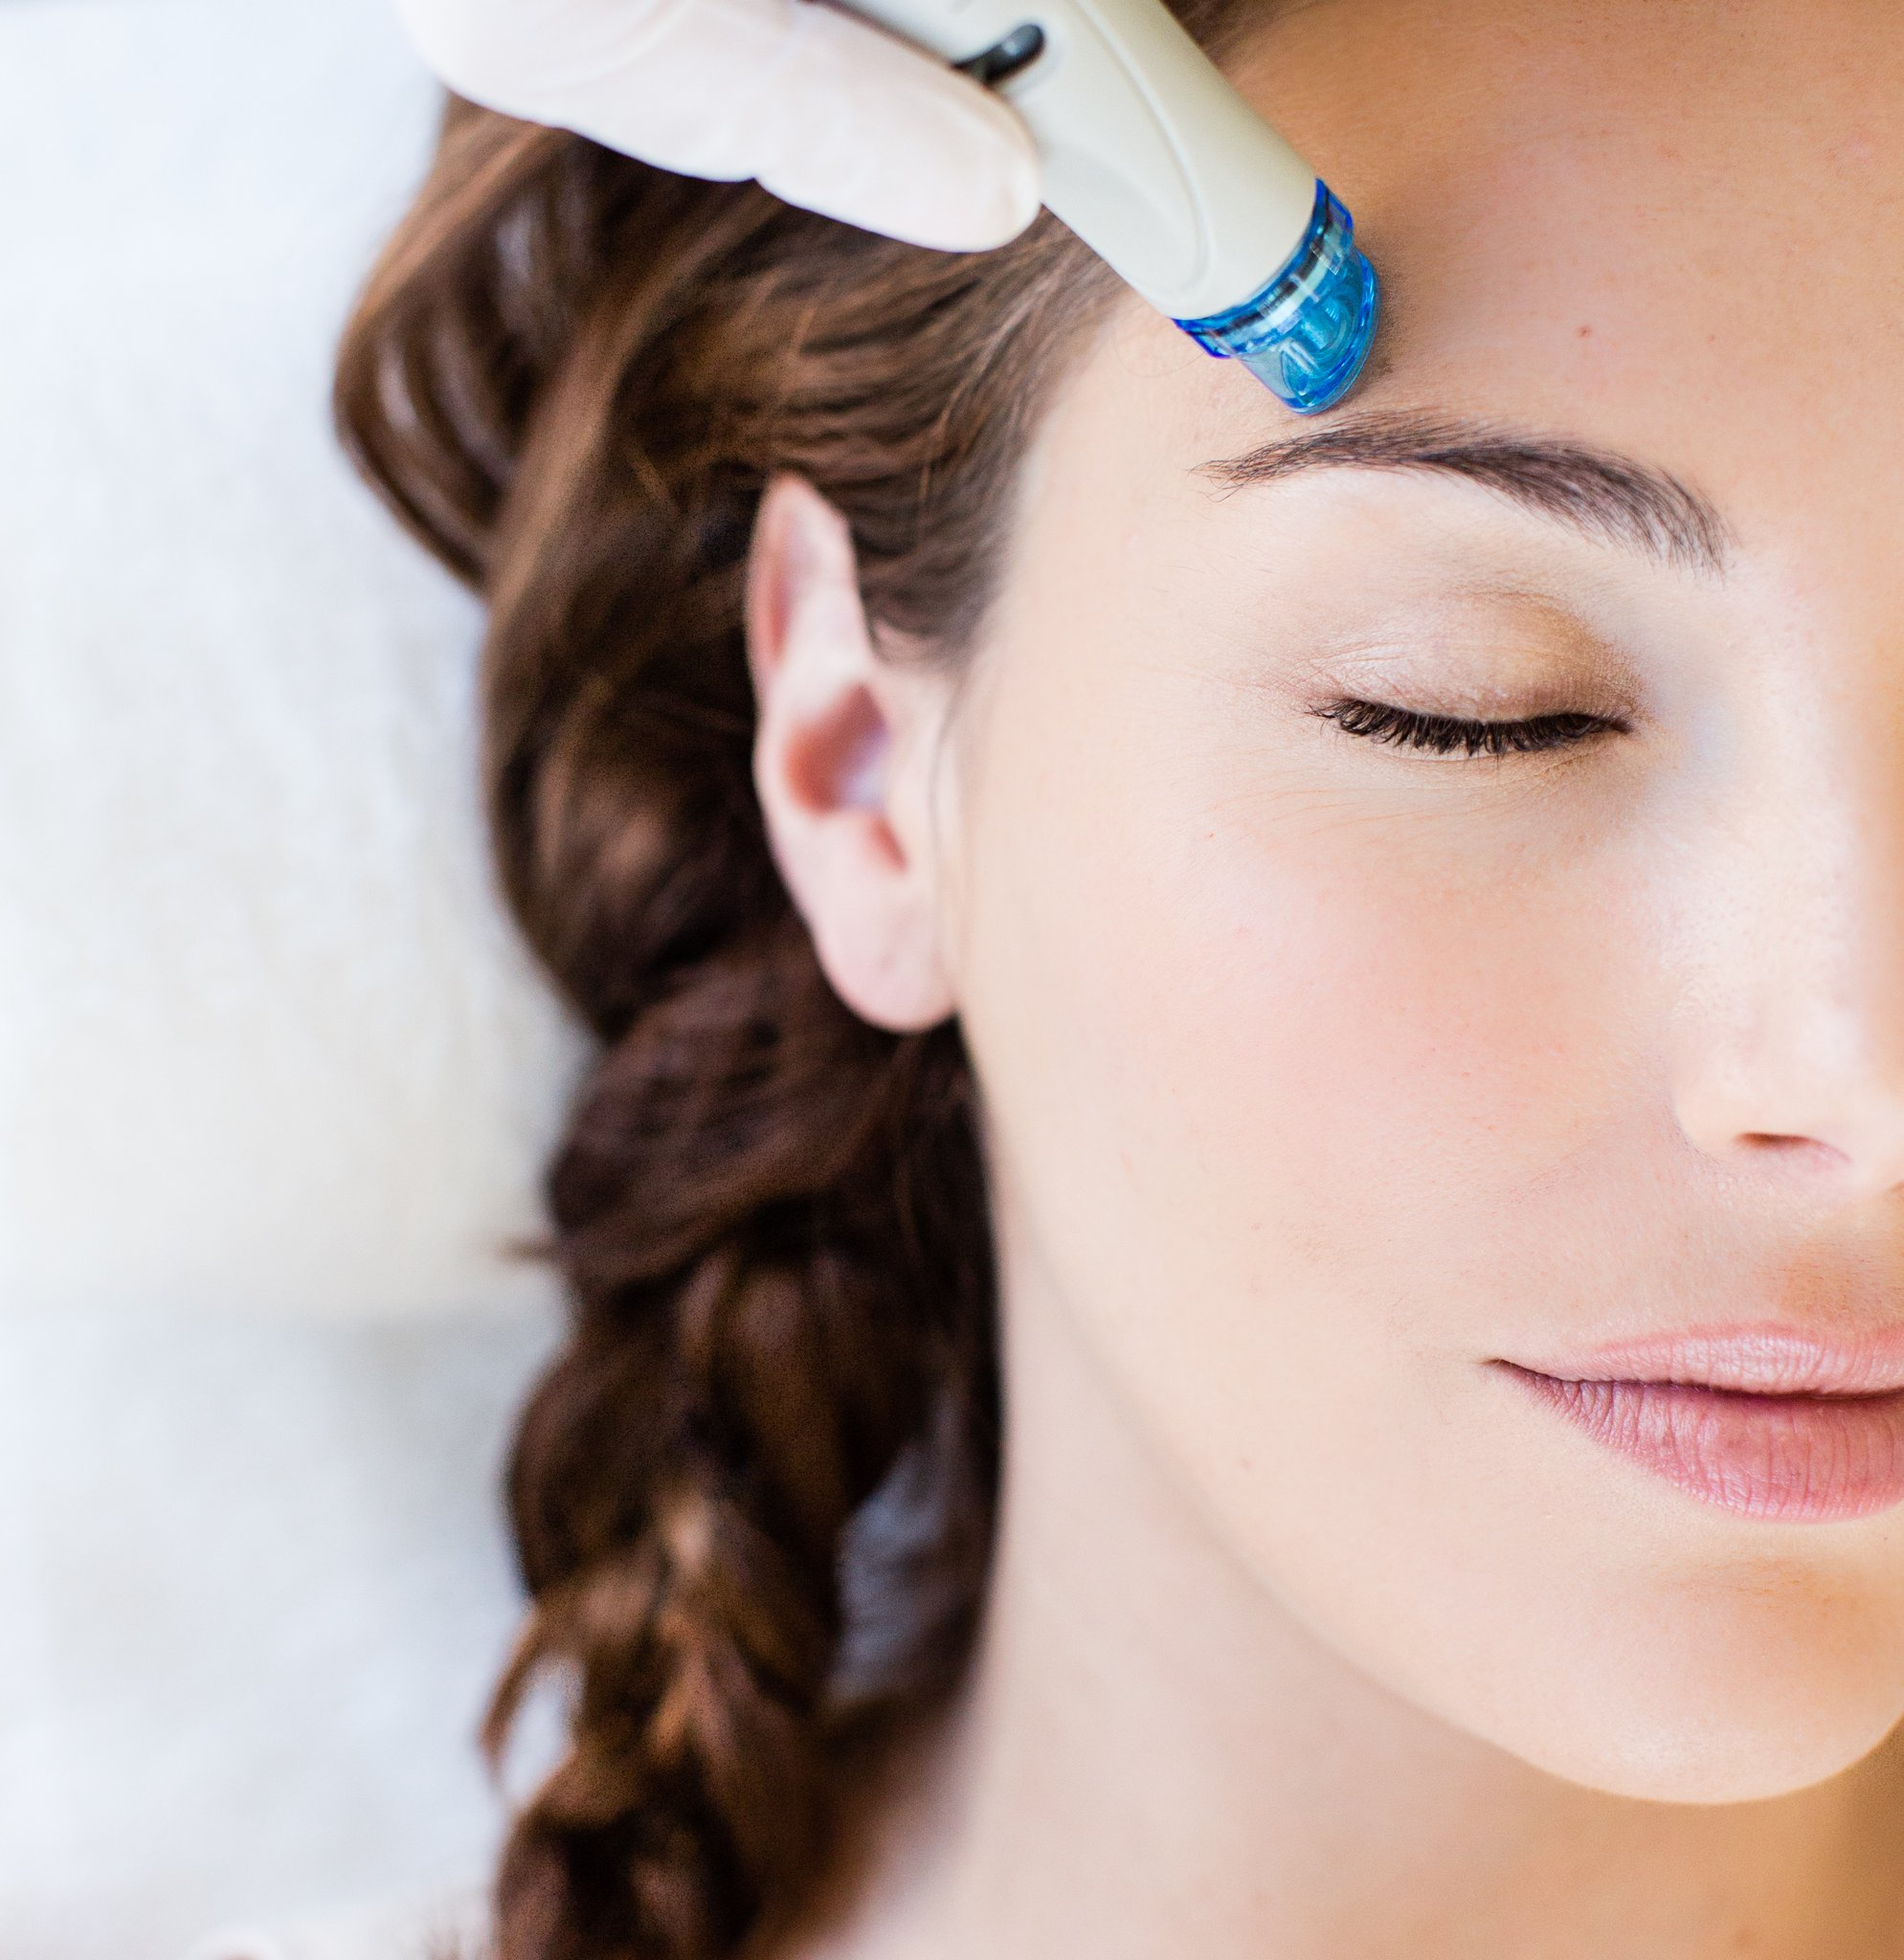 What's So Great About A Hydrafacial?